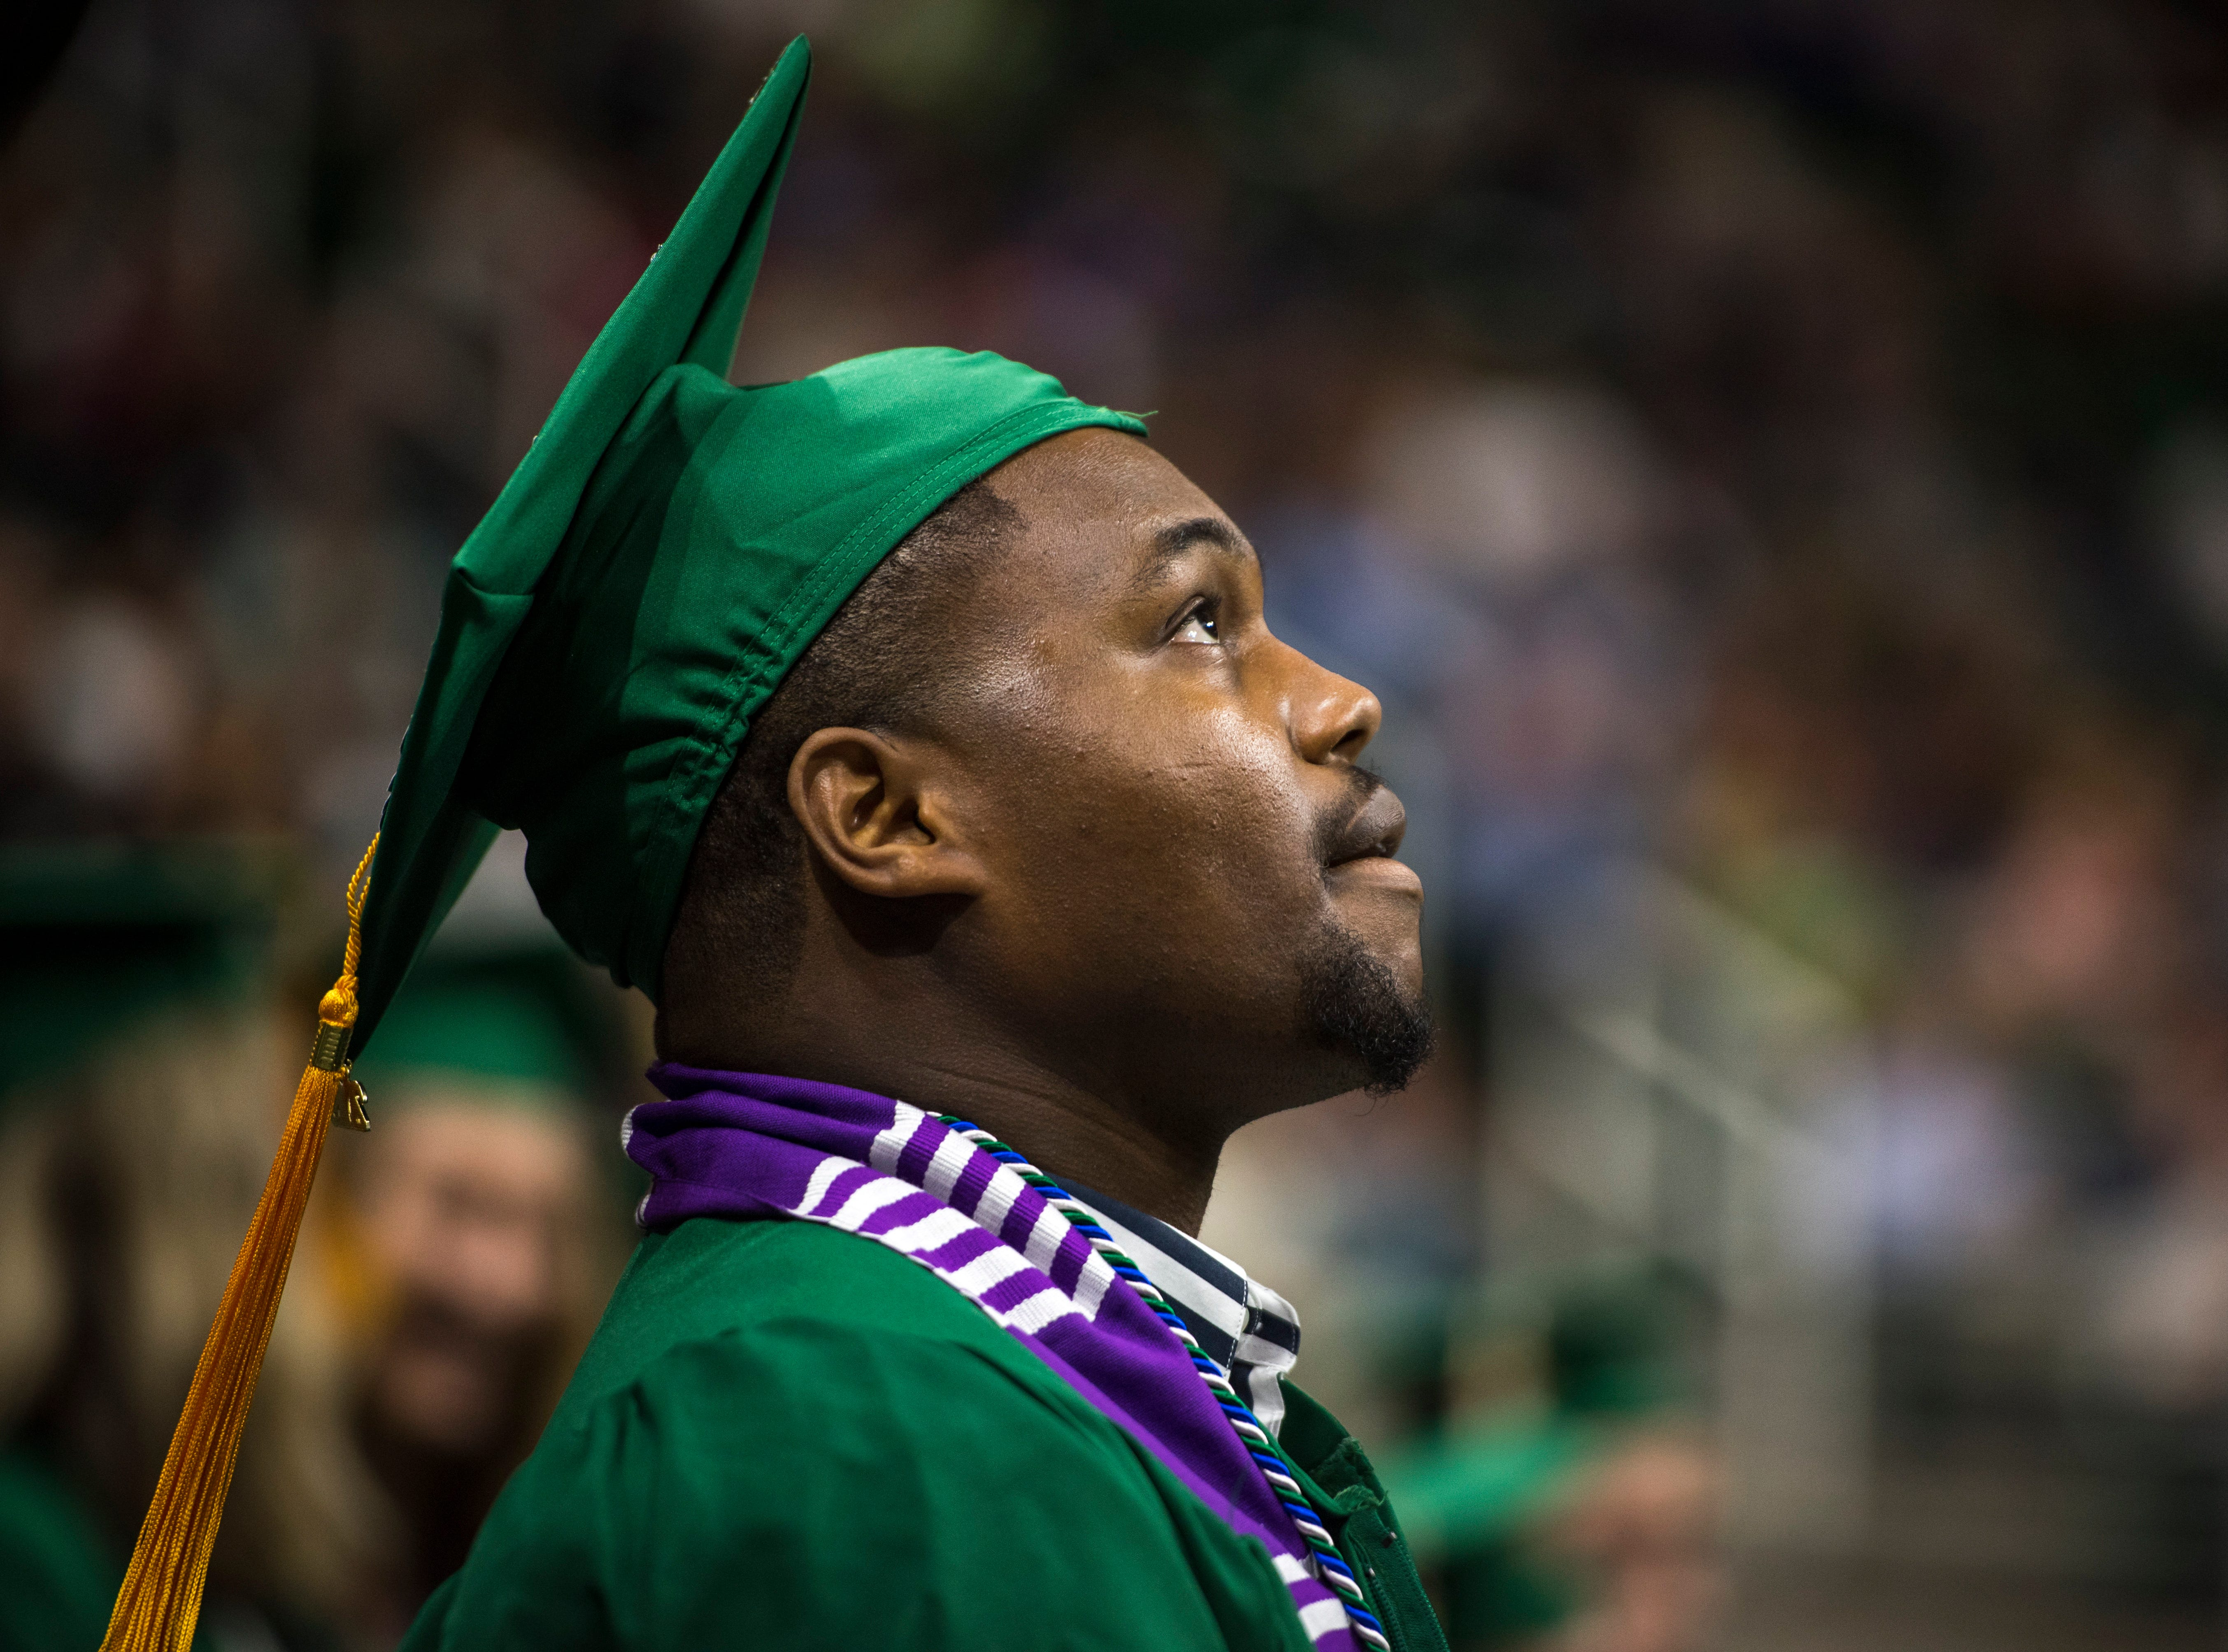 Nursing graduate Marlin Till looks on during the commencement exercises.